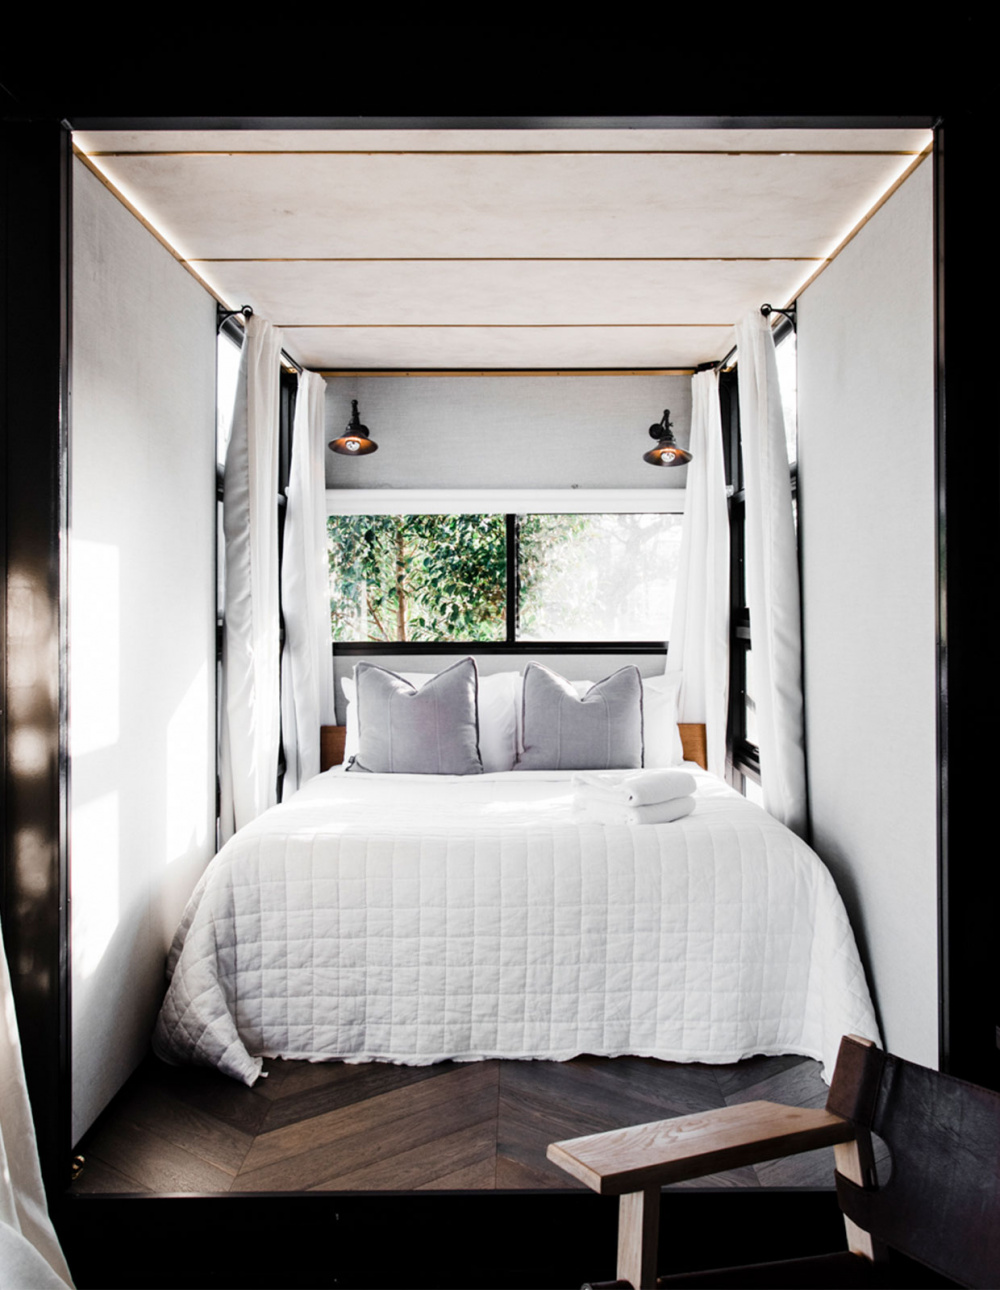 A Micro Hotel Room Inside An Upcycled Shipping Container